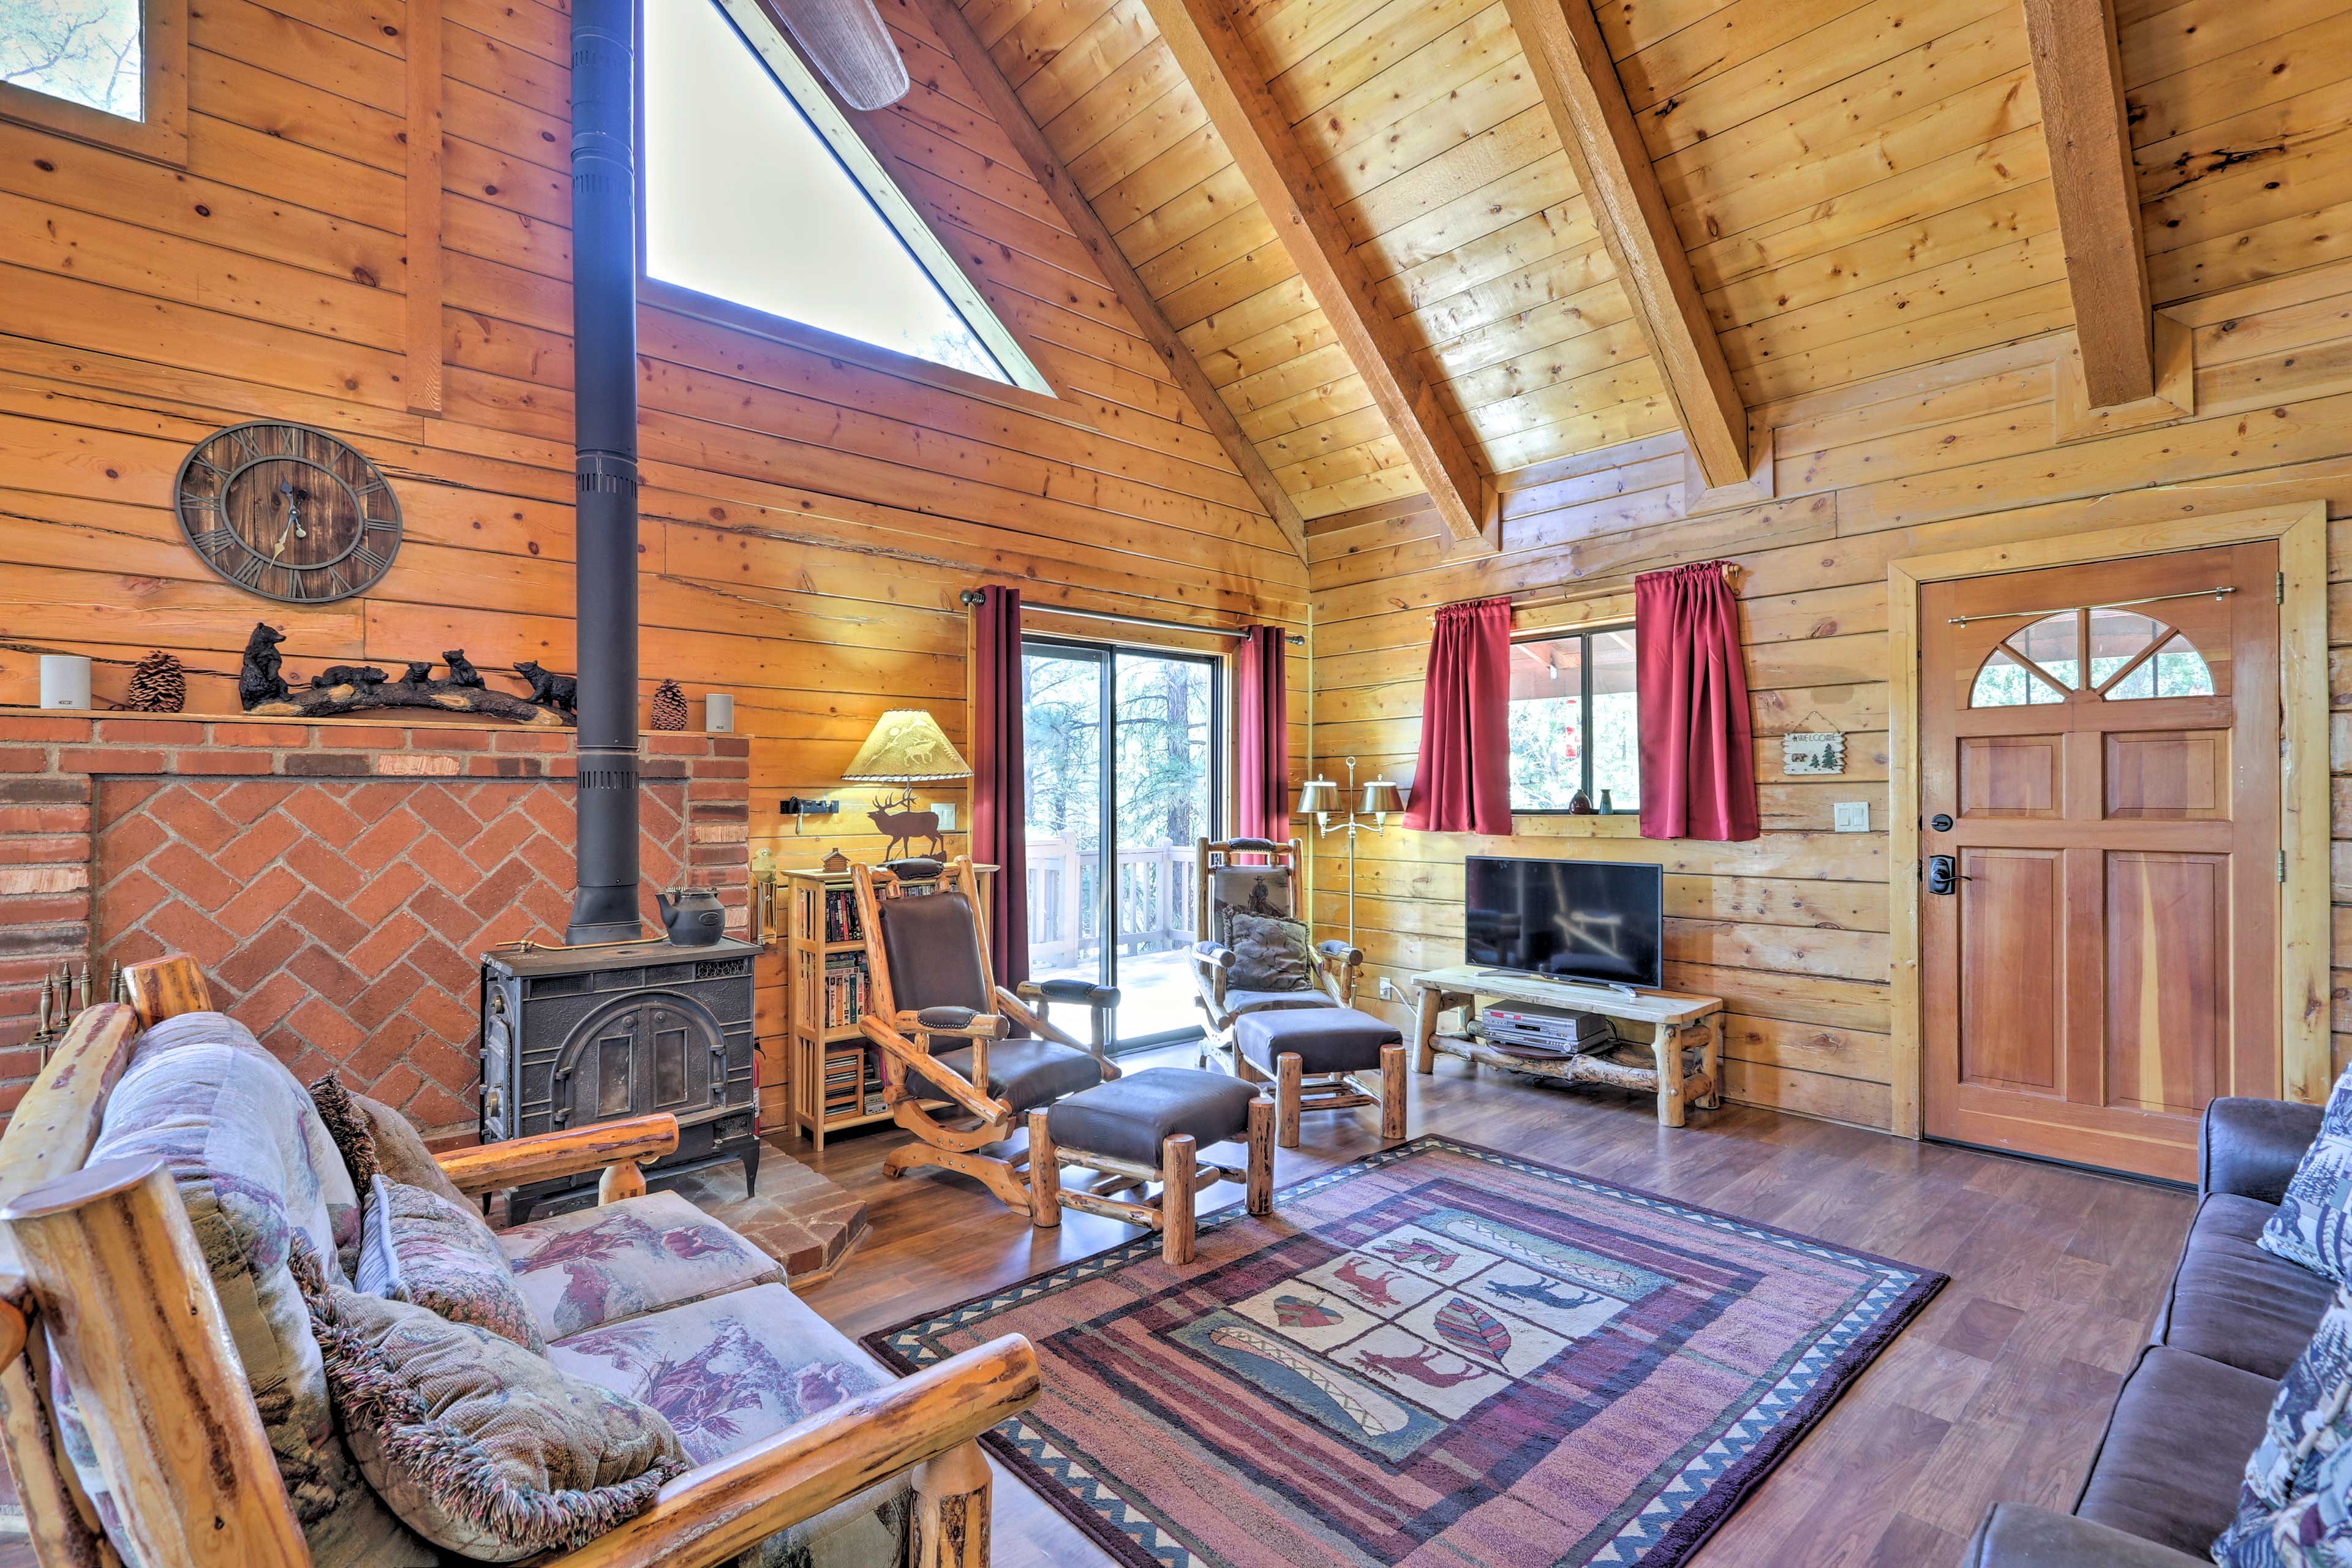 Enjoy evenings in the living room gathered around the wood-burning stove.